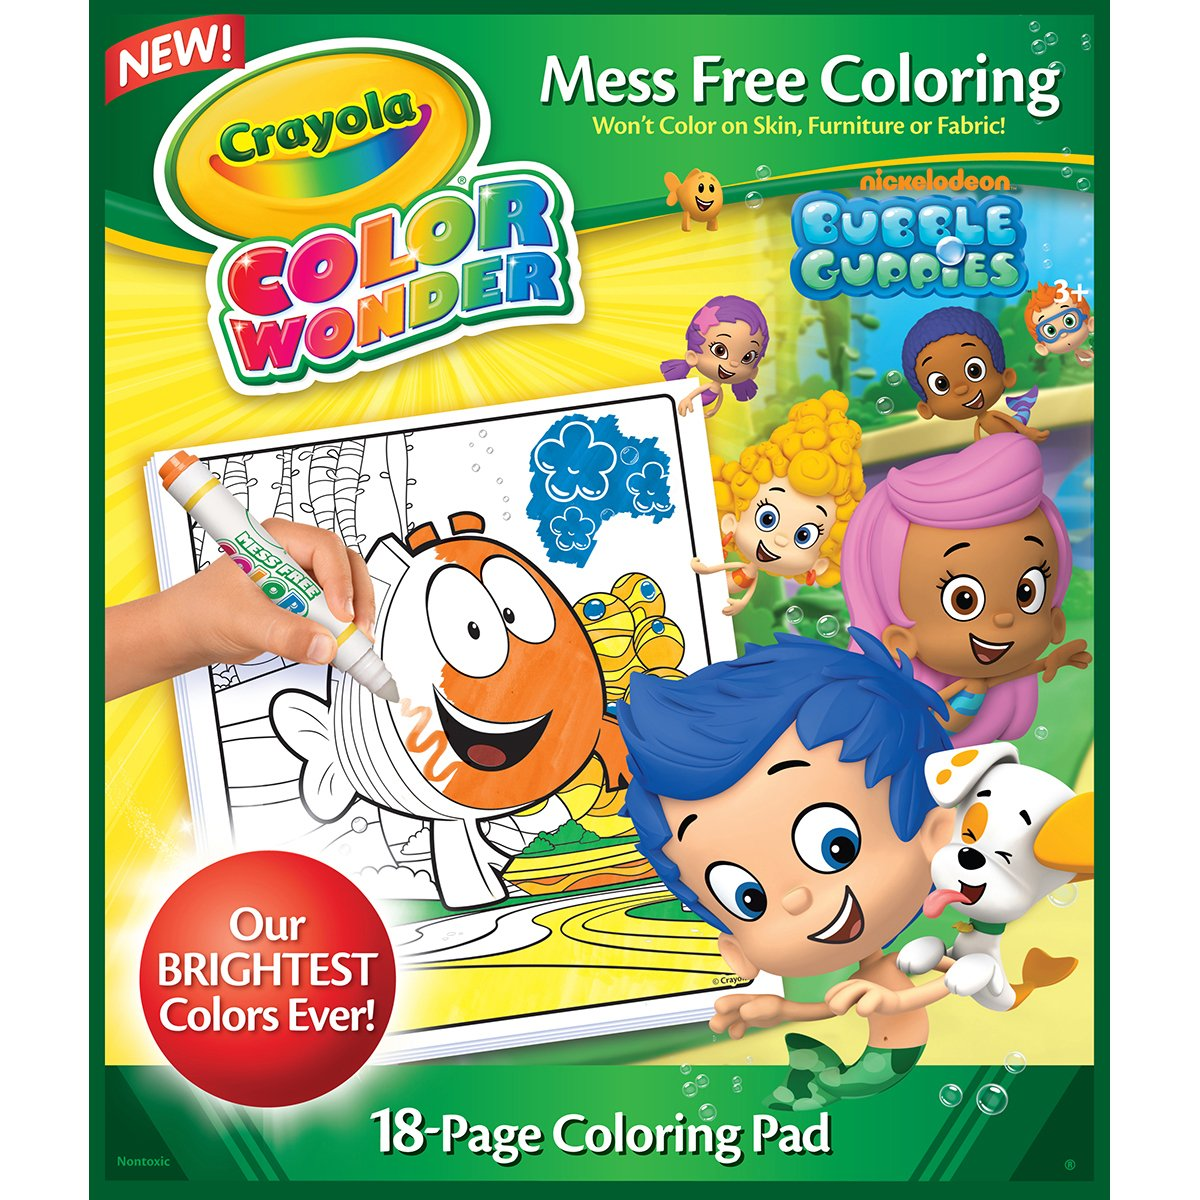 Crayola Color Wonder Coloring Pad-Bubble Guppies: Amazon.de: Spielzeug